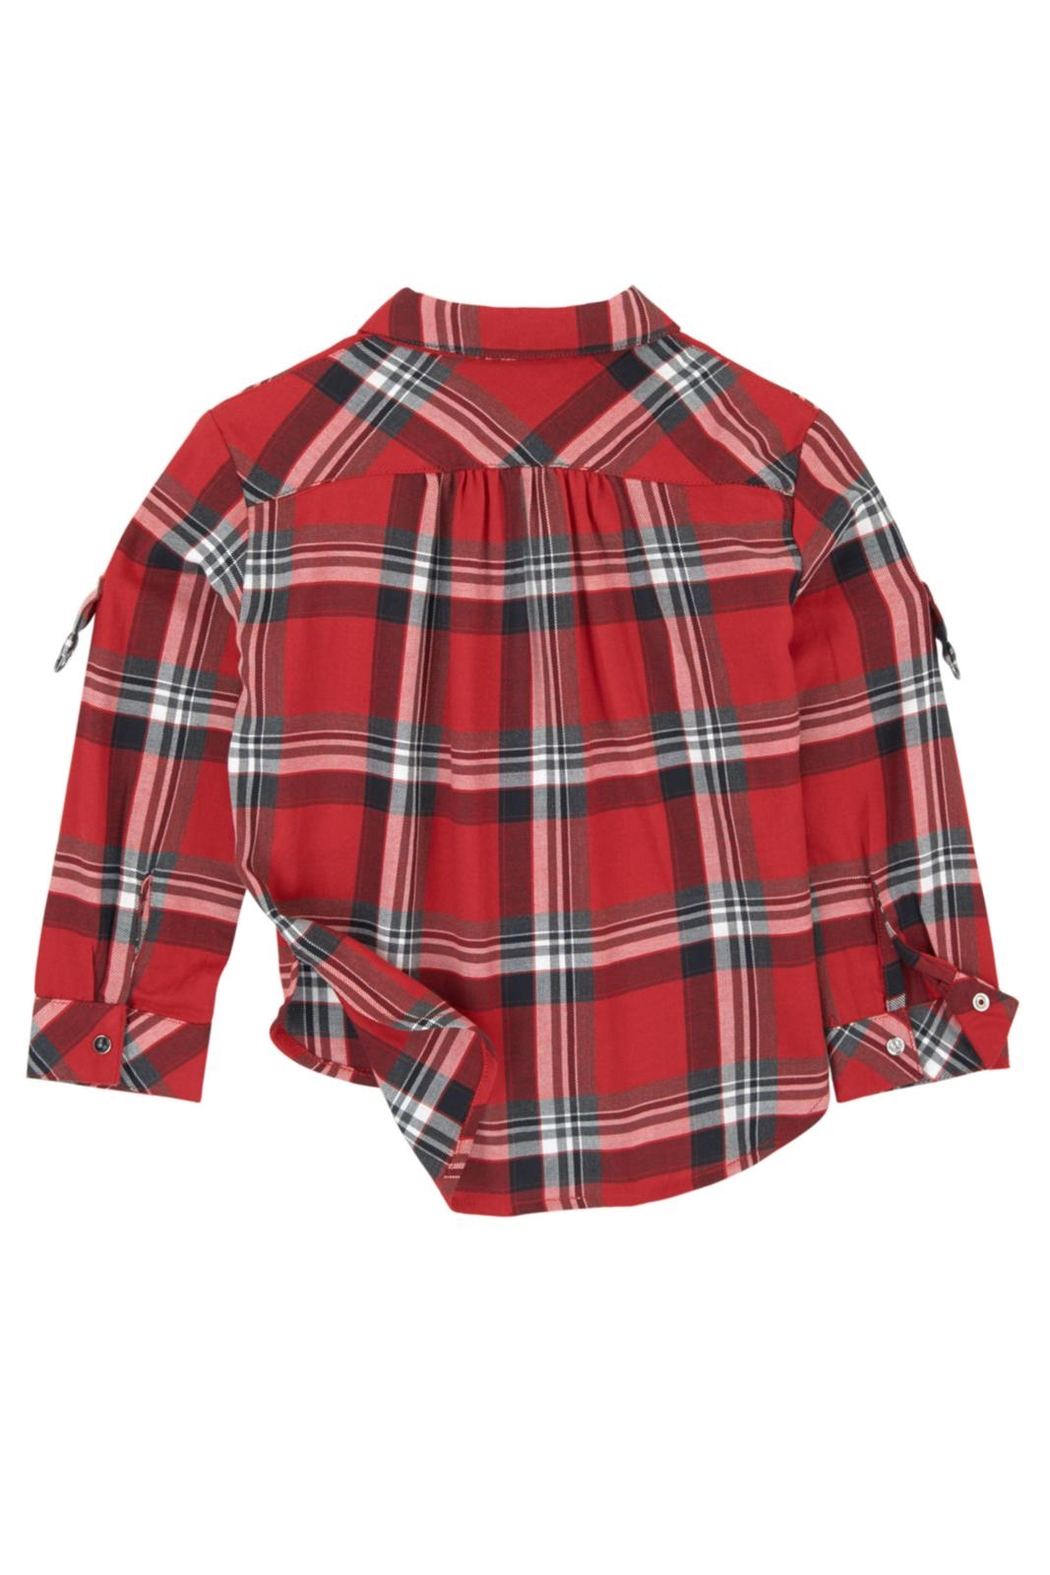 Mayoral Grommet Plaid Blouse - Front Full Image